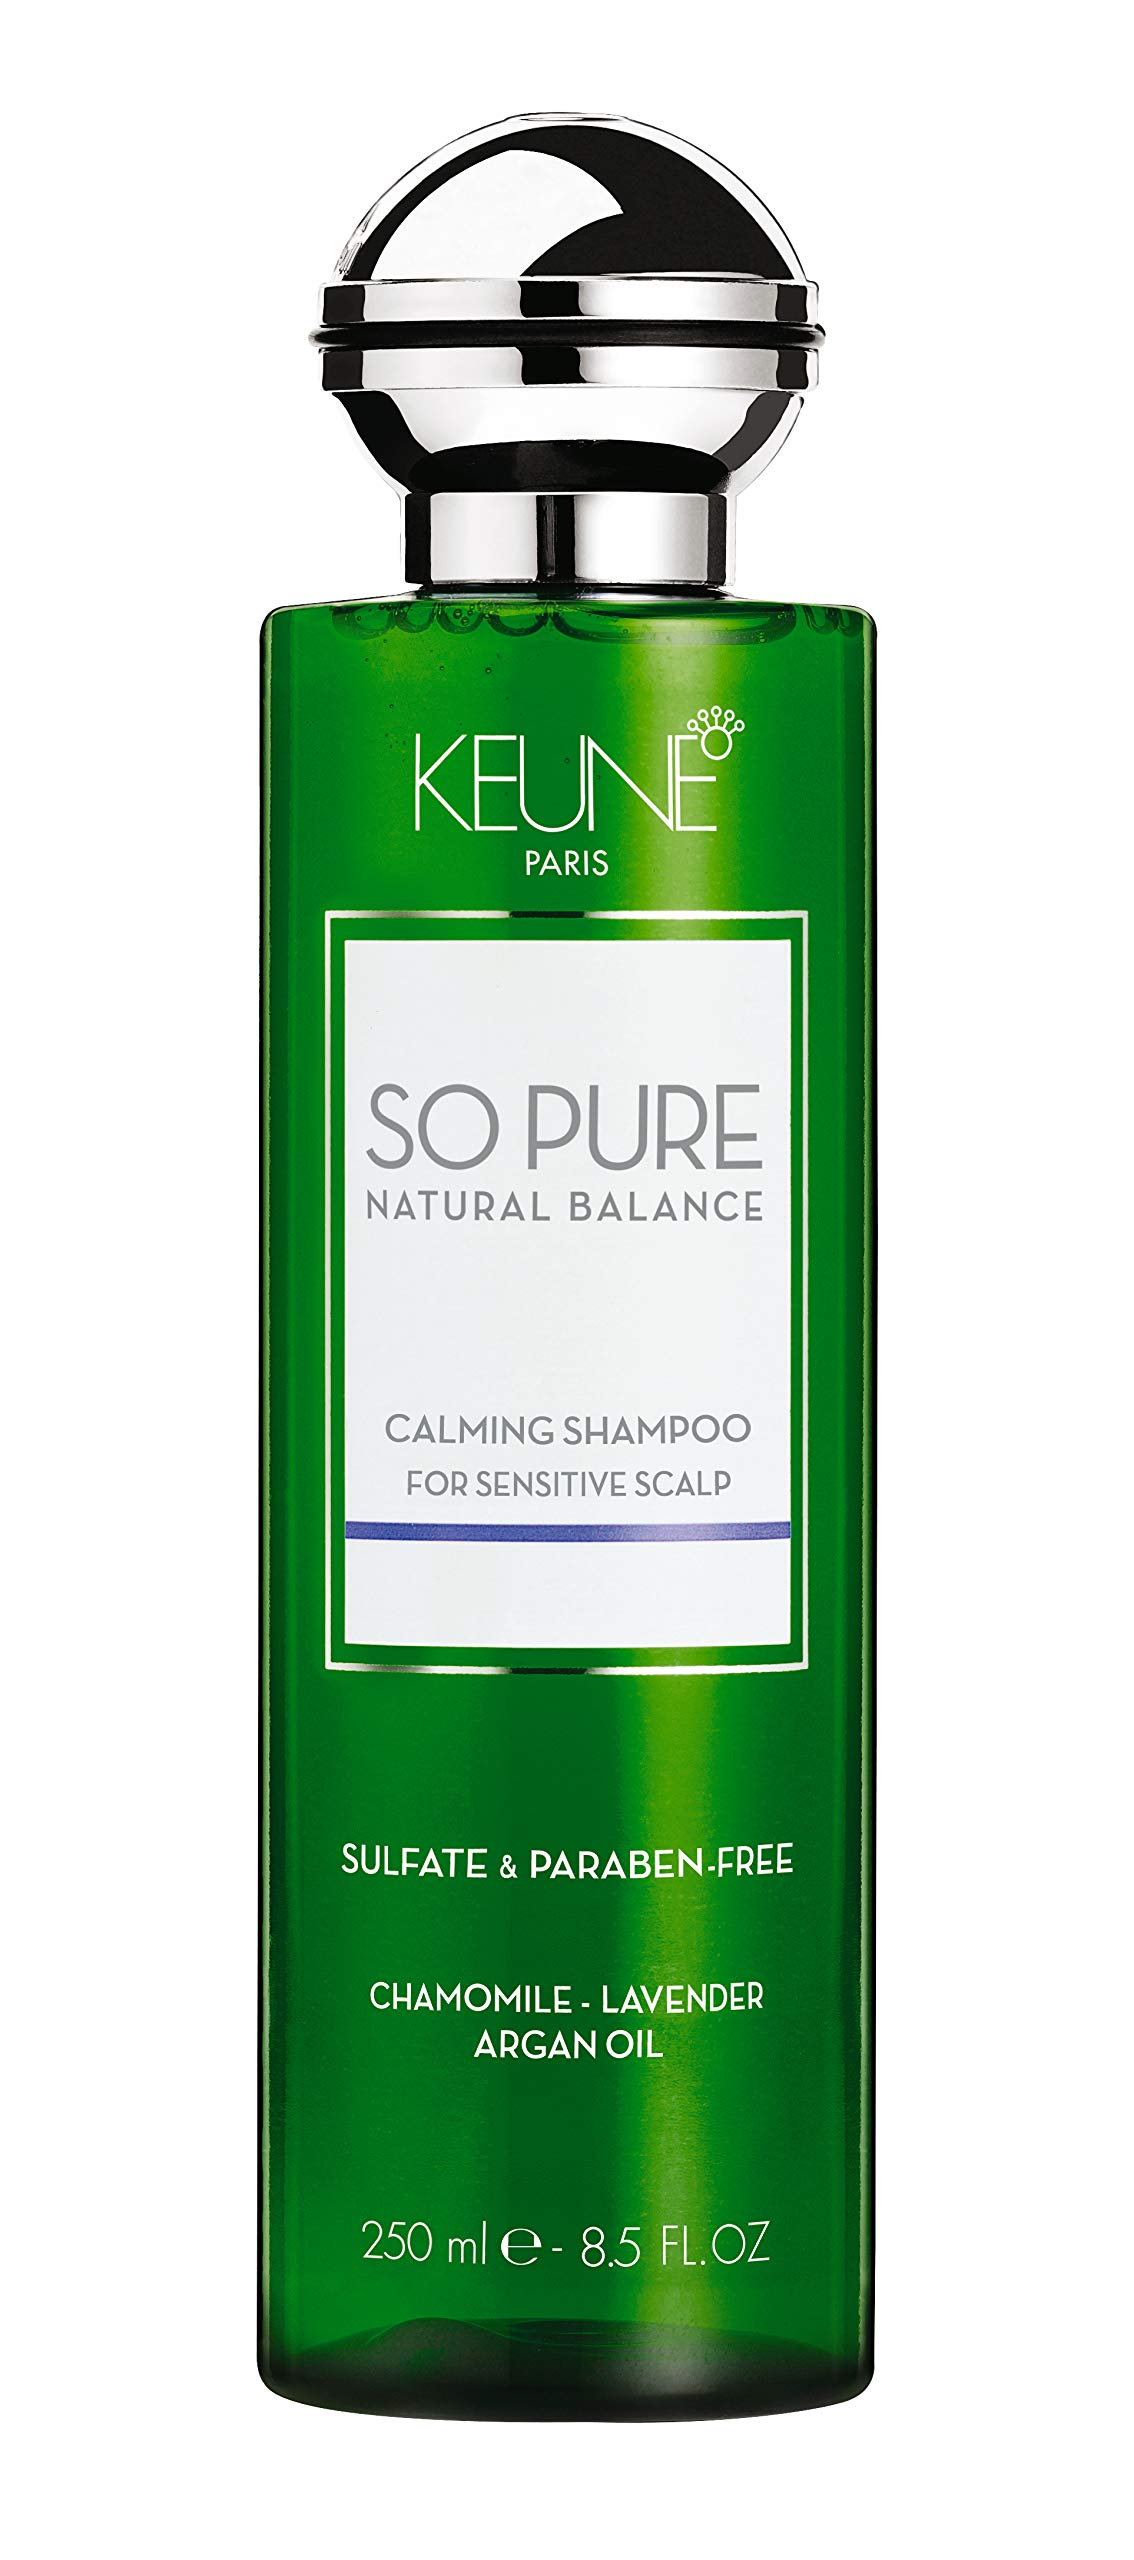 KEUNE So Pure Calming Shampoo, 8.5 Fl oz